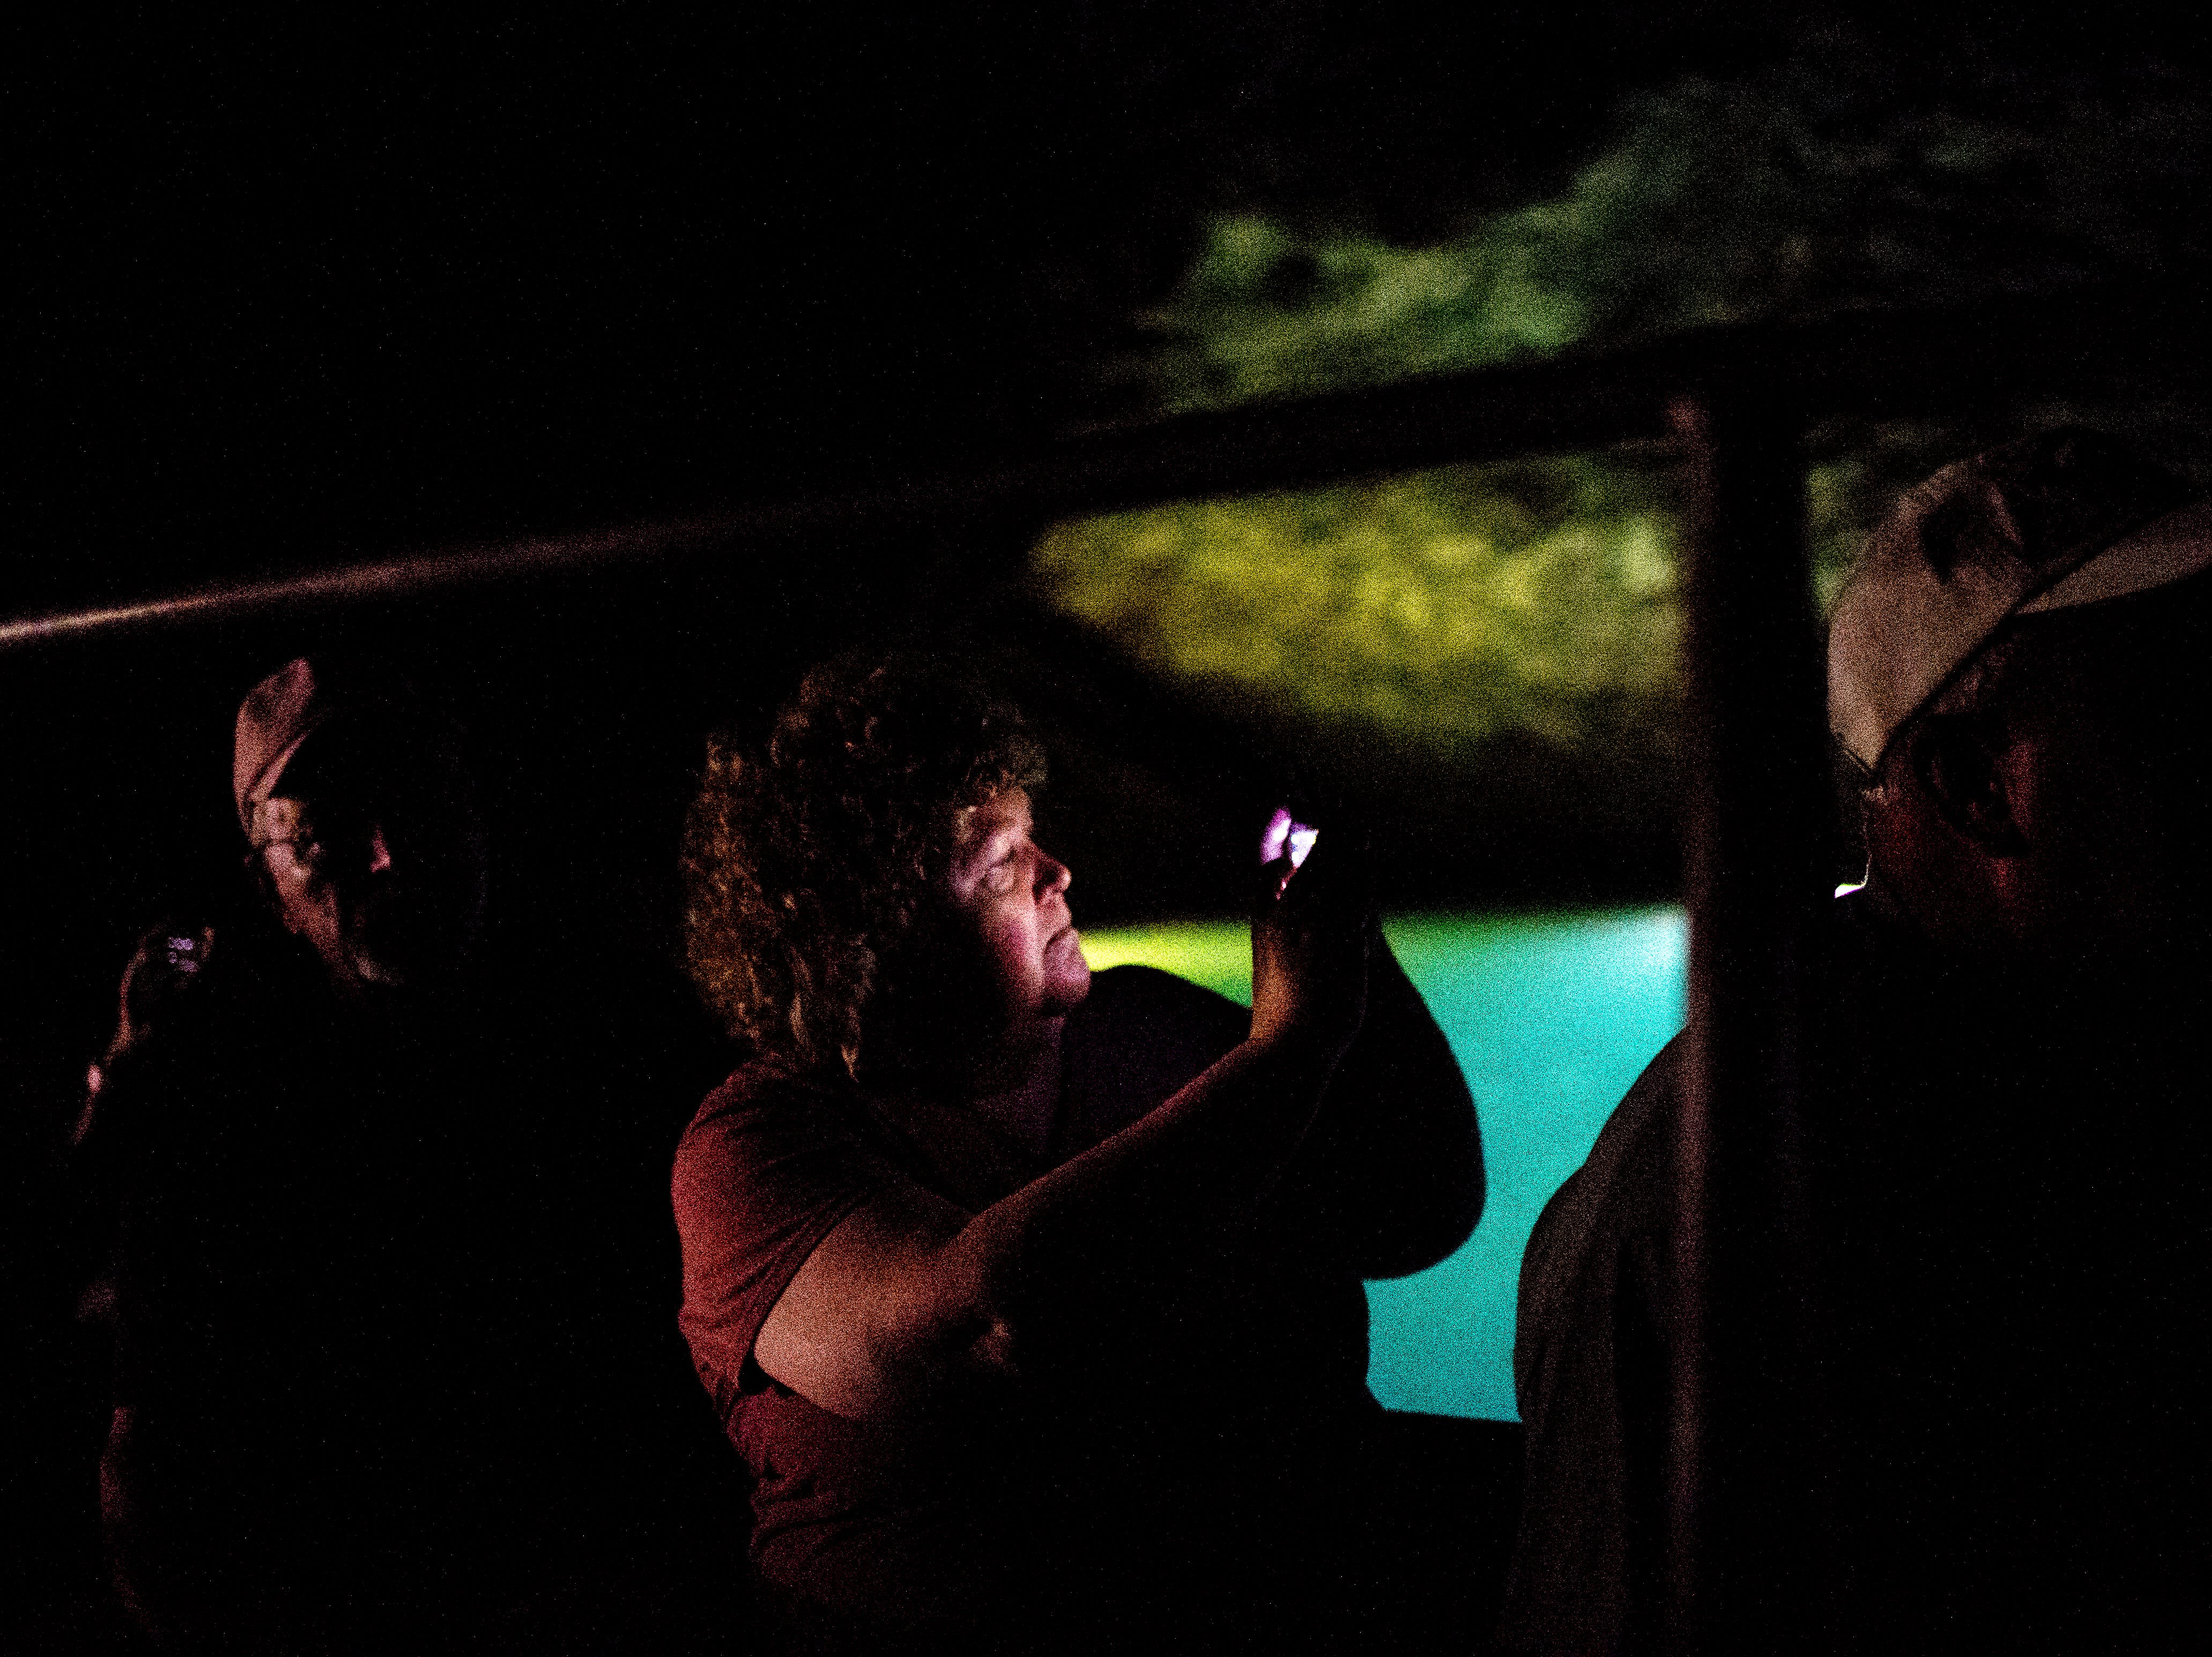 A visitor snaps a photo on their phone at the Lost Sea Adventure underground cave attraction outside of Sweetwater, Tennessee on Wednesday, August 15, 2018. The cave system dates back some 20,000 years and today features points of interests like an old moonshine still, rock formations, Confederate Army graffiti and the popular boat ride in a natural lake stocked with 200 rainbow trout.